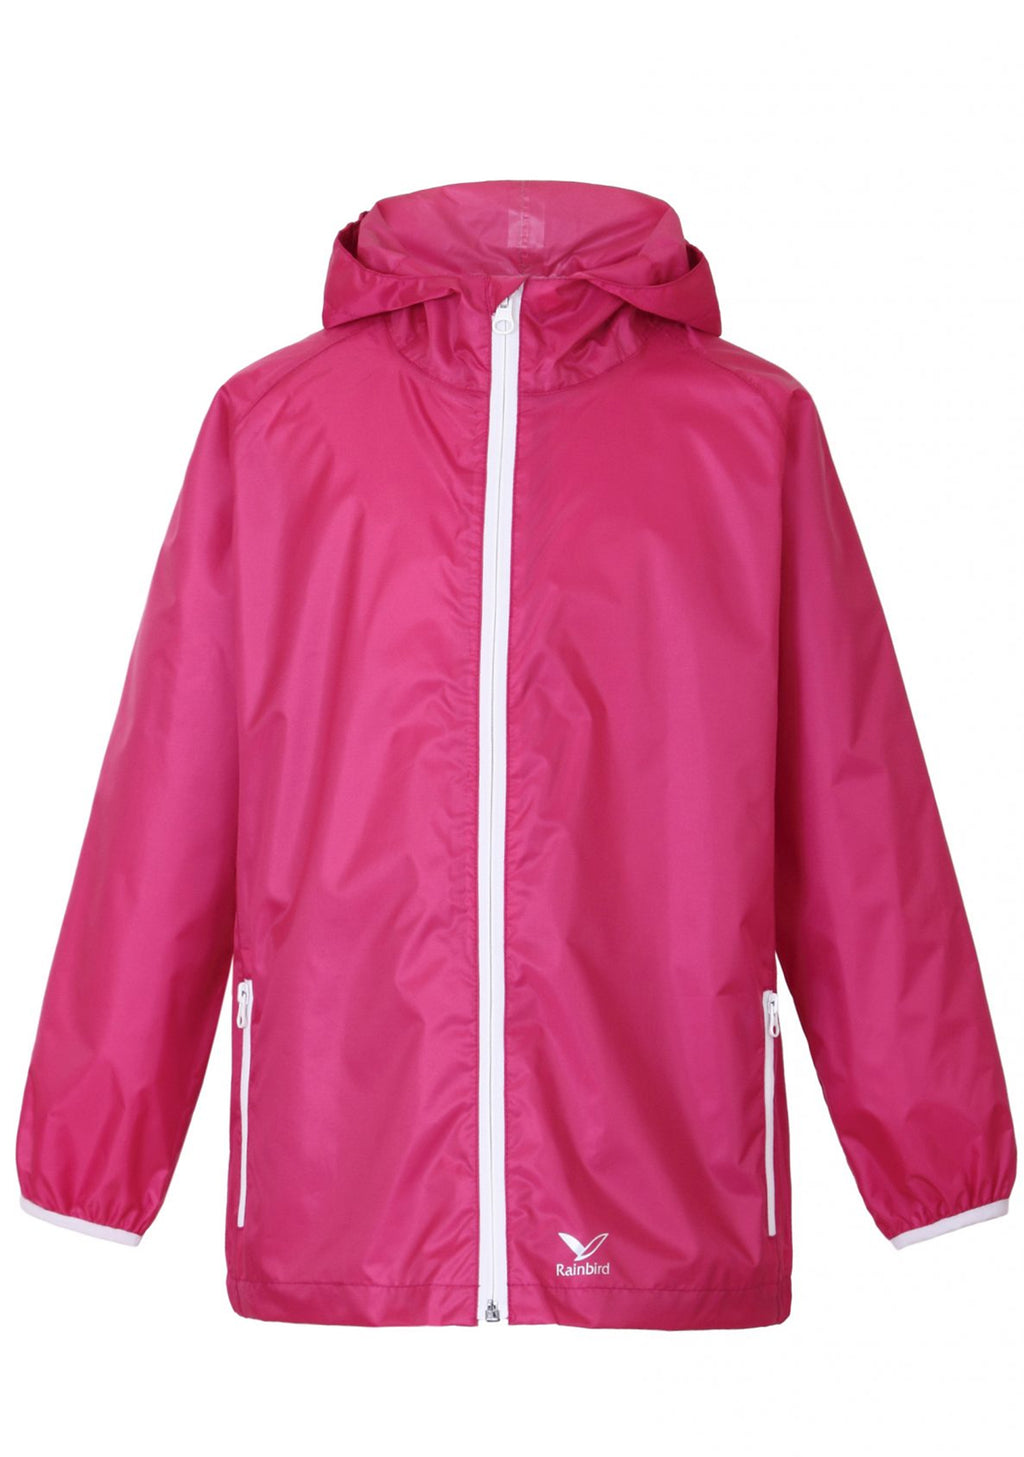 RAINBIRD UNISEX KIDS GOSTOW RAIN JACKET BRIGHT BERRY <BR> K8556